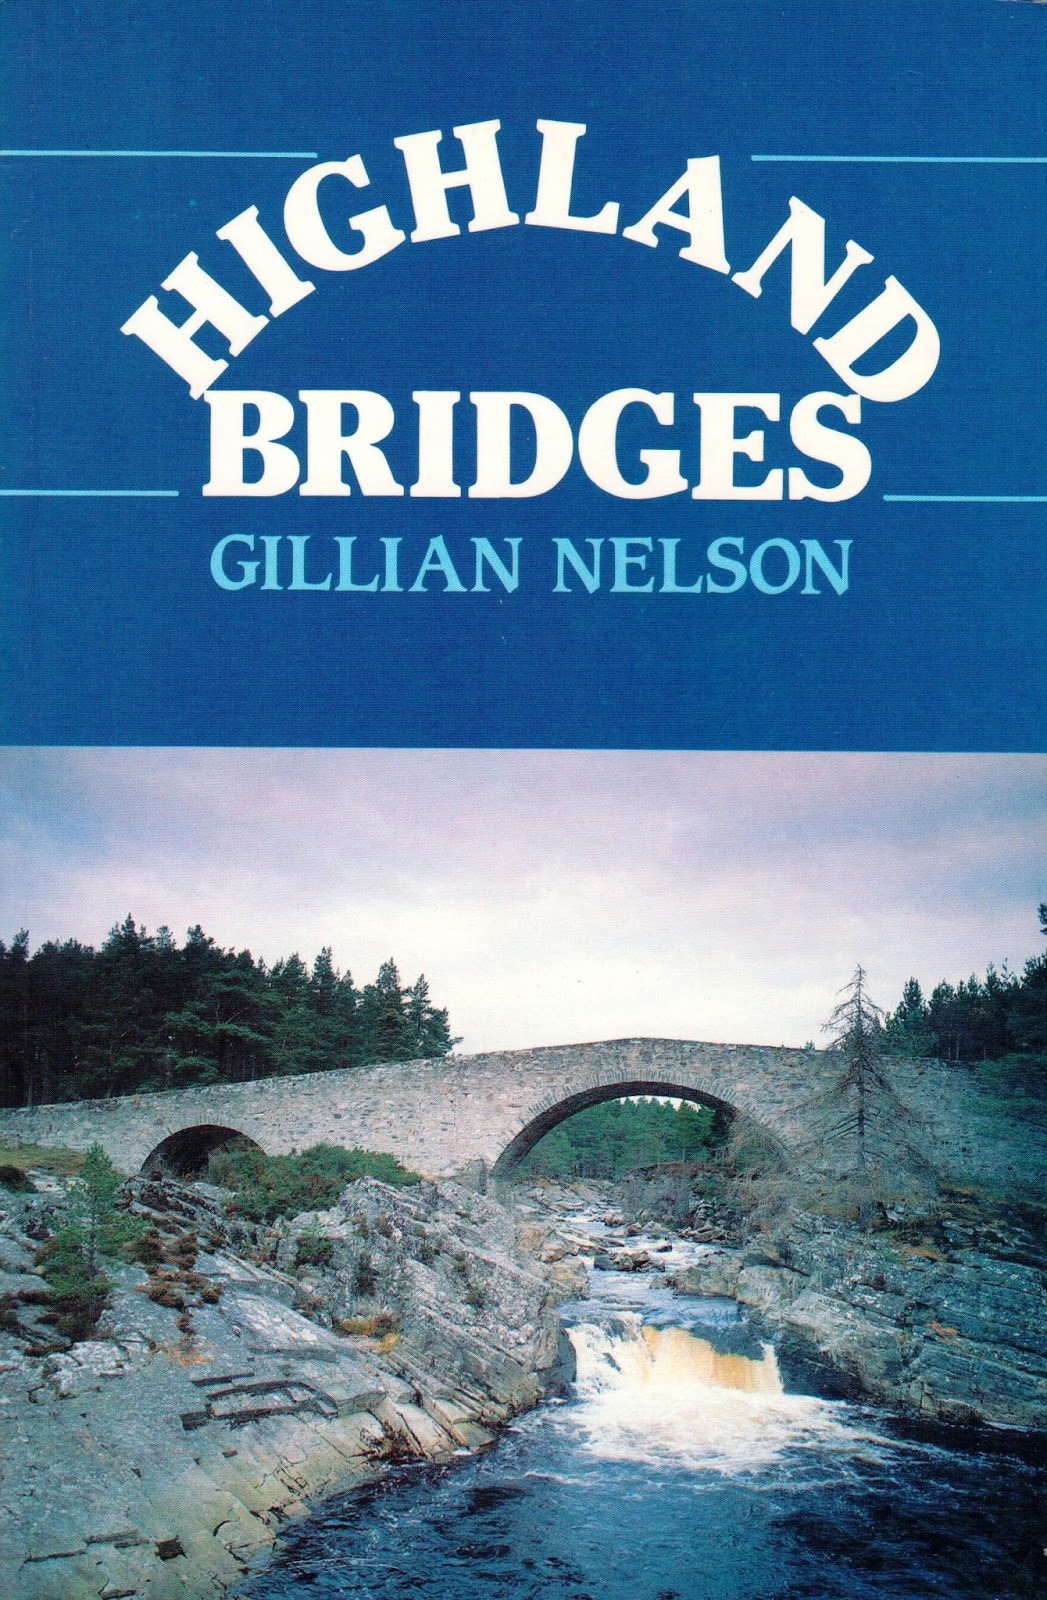 types of bridges essay Different types of bridges the quest for travel has always been one that man has tried to conquer first, he traveled on foot, and then developed methods of transportation such as boats, but one of the first obstacles that he had to overcome was getting across rivers, waterways, and canals.